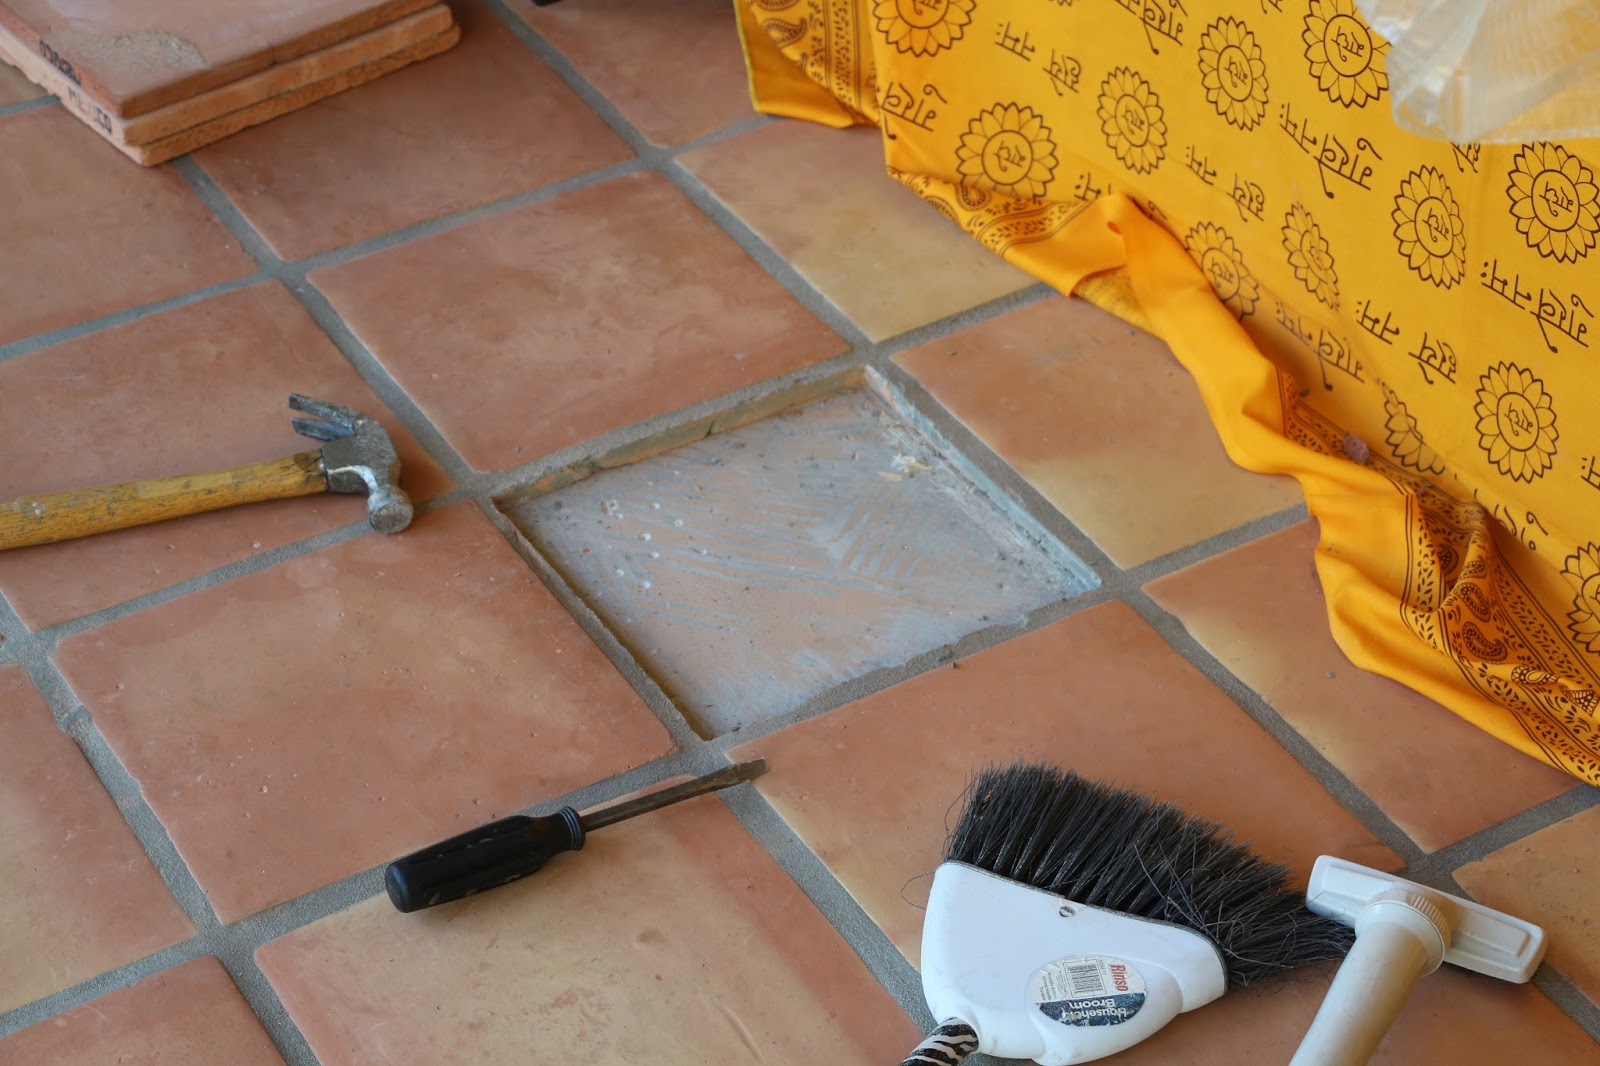 Dusty coyote replacing a cracked or chipped tile replacing a broken tile diy broken tile dailygadgetfo Choice Image